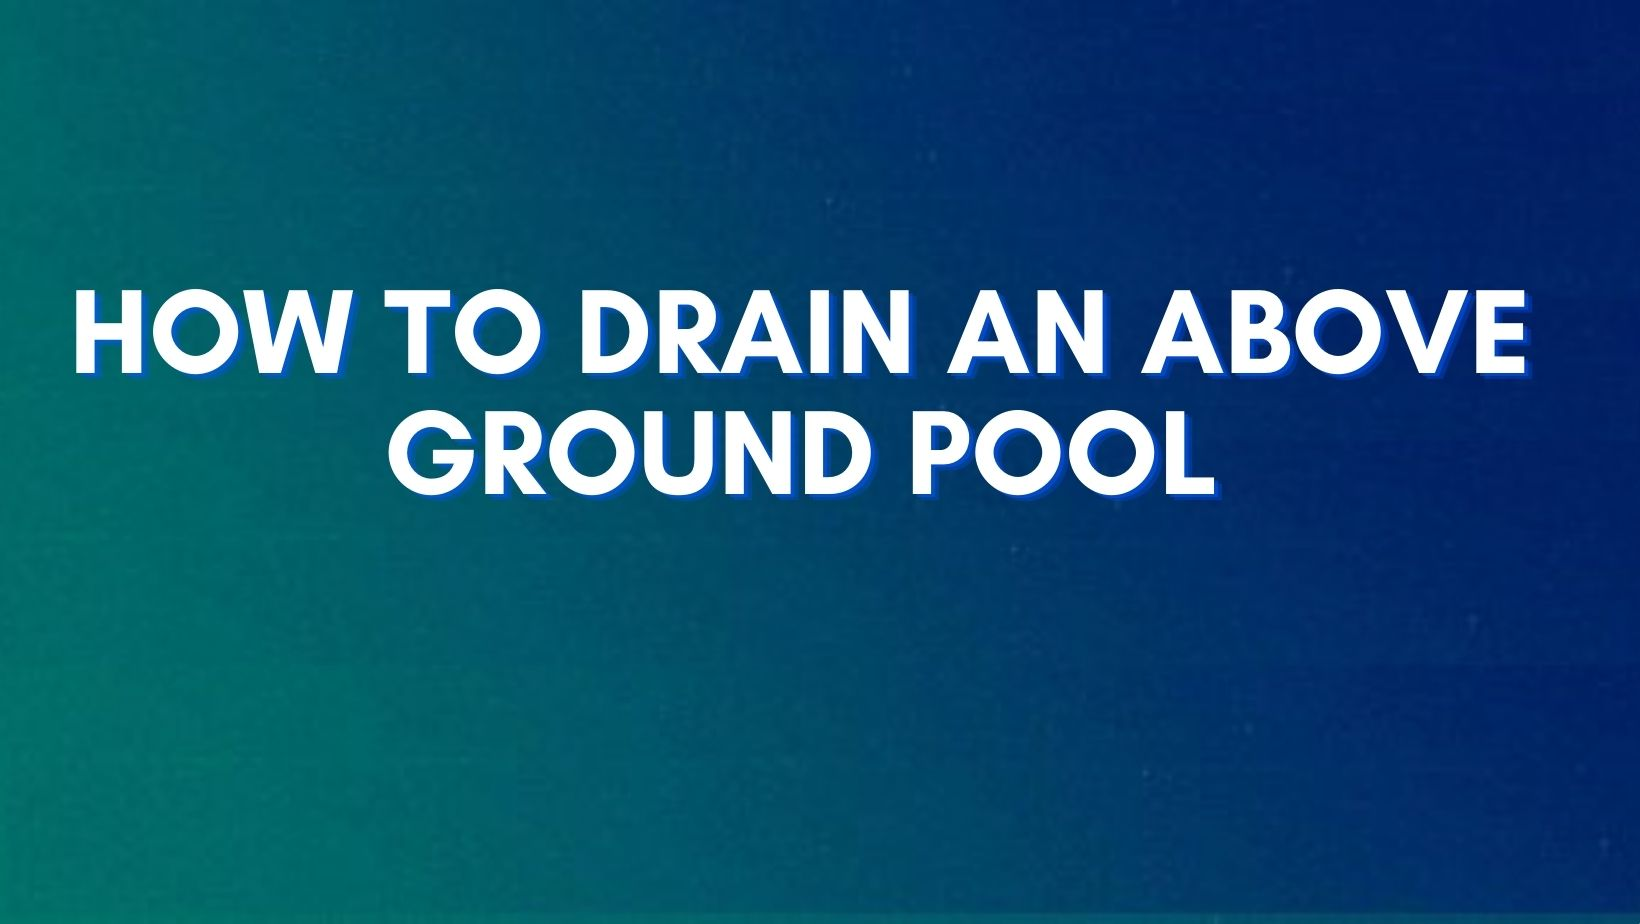 A step-by-step guide for draining water from above ground pool